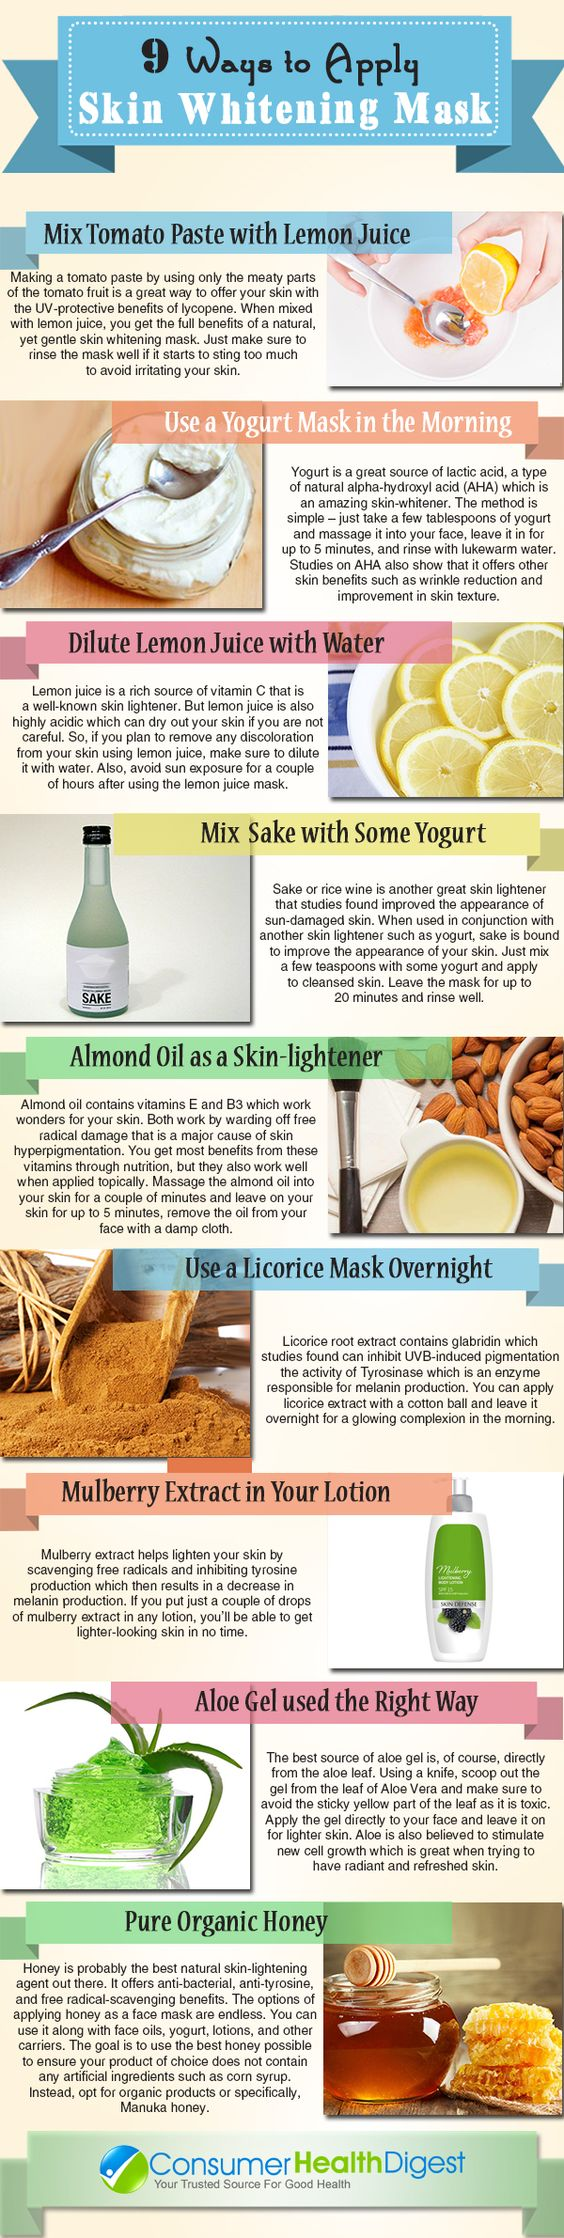 ways to apply skin whitening mask